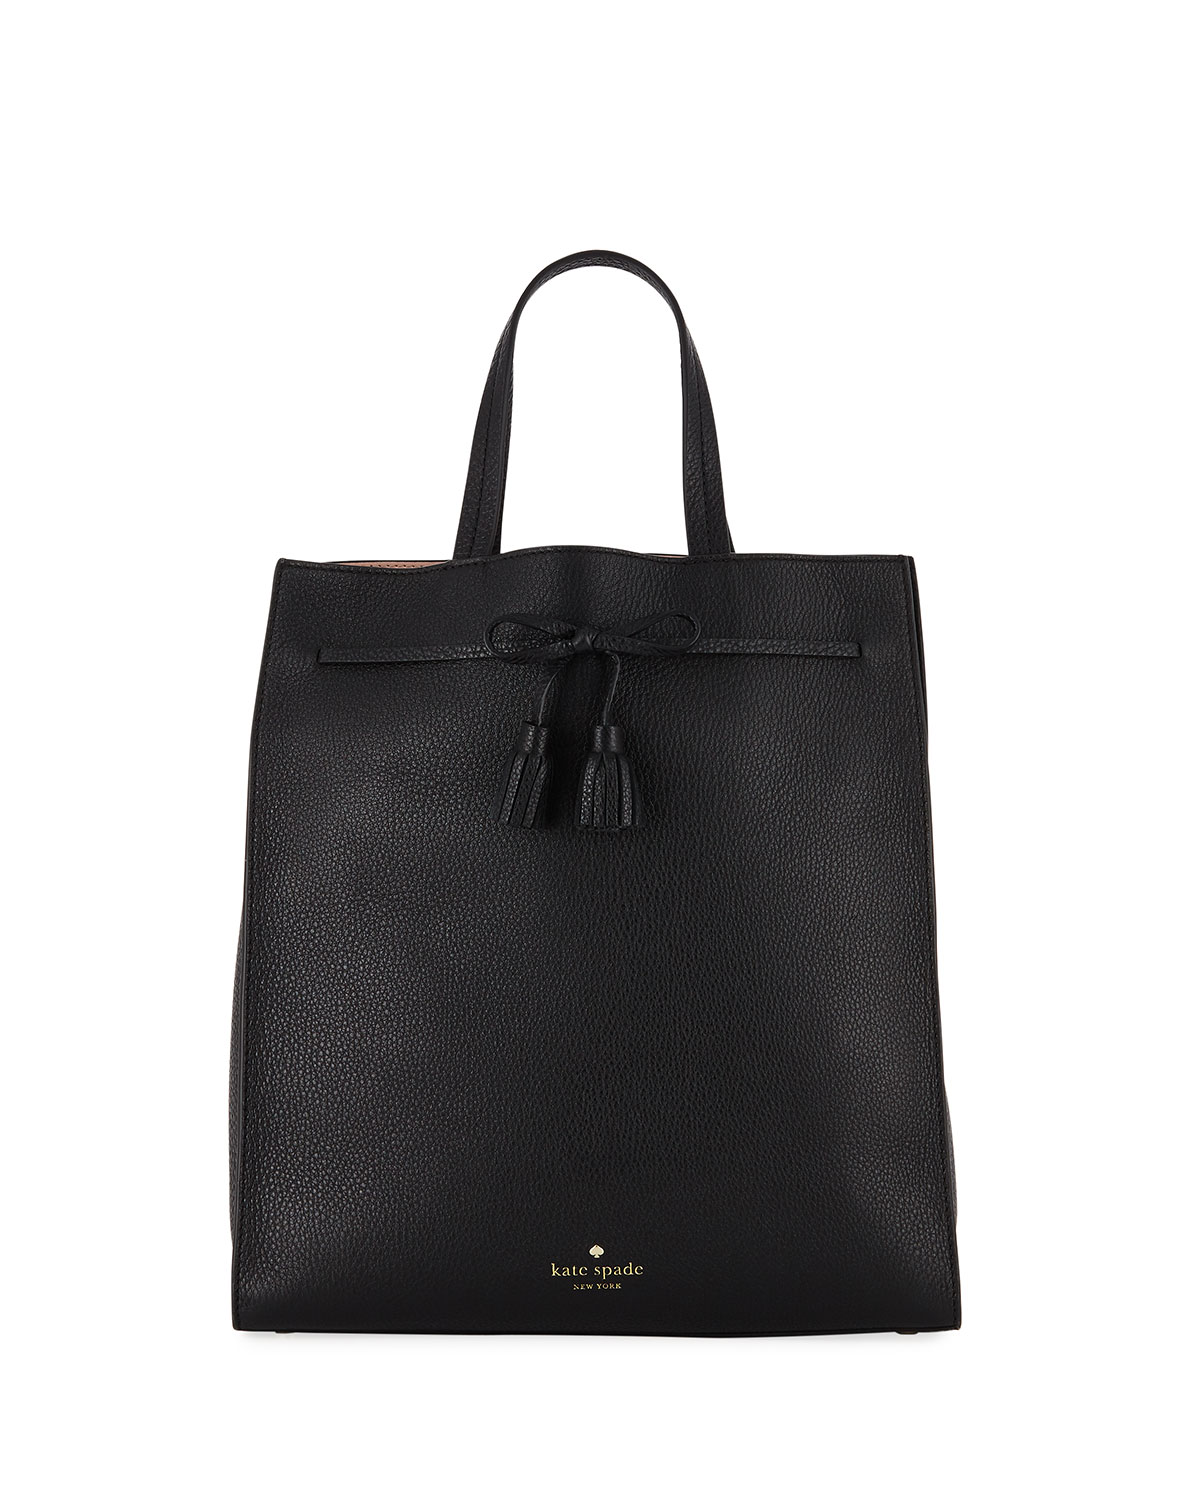 7118c98a15b3 kate spade new york hayes street medium leather tote bag | Neiman Marcus